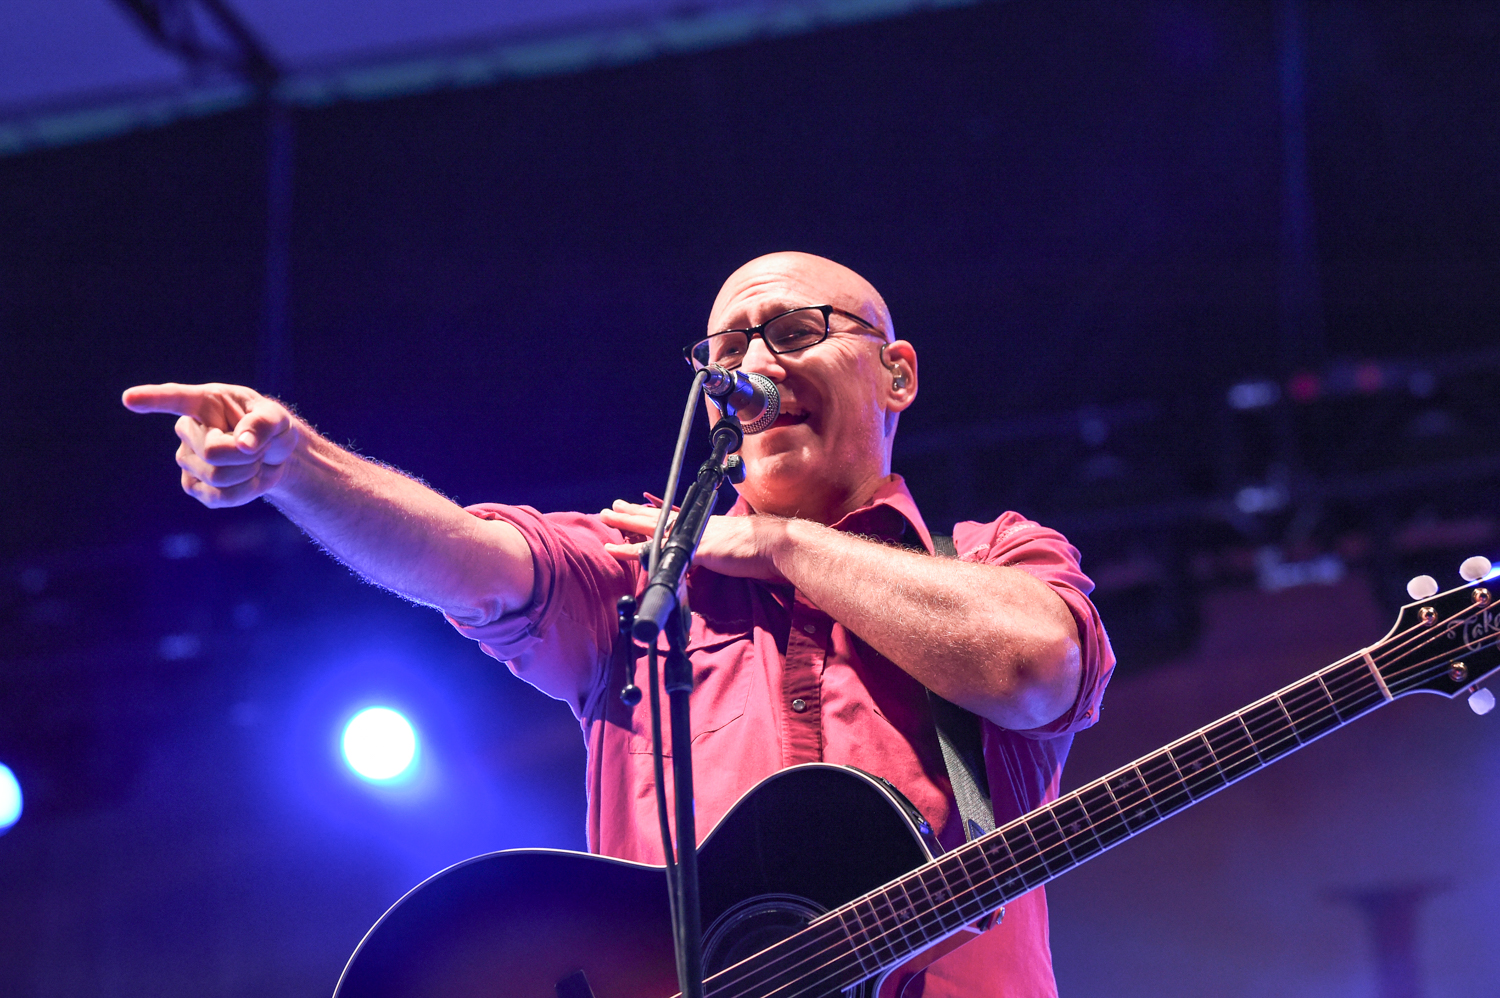 Ryan Newell with the band Sister Hazel performs in a socially distancing concert at the HEB Center at Cedar Park, Cedar Park Texas on October 2, 2020. Photo © Manuel Nauta